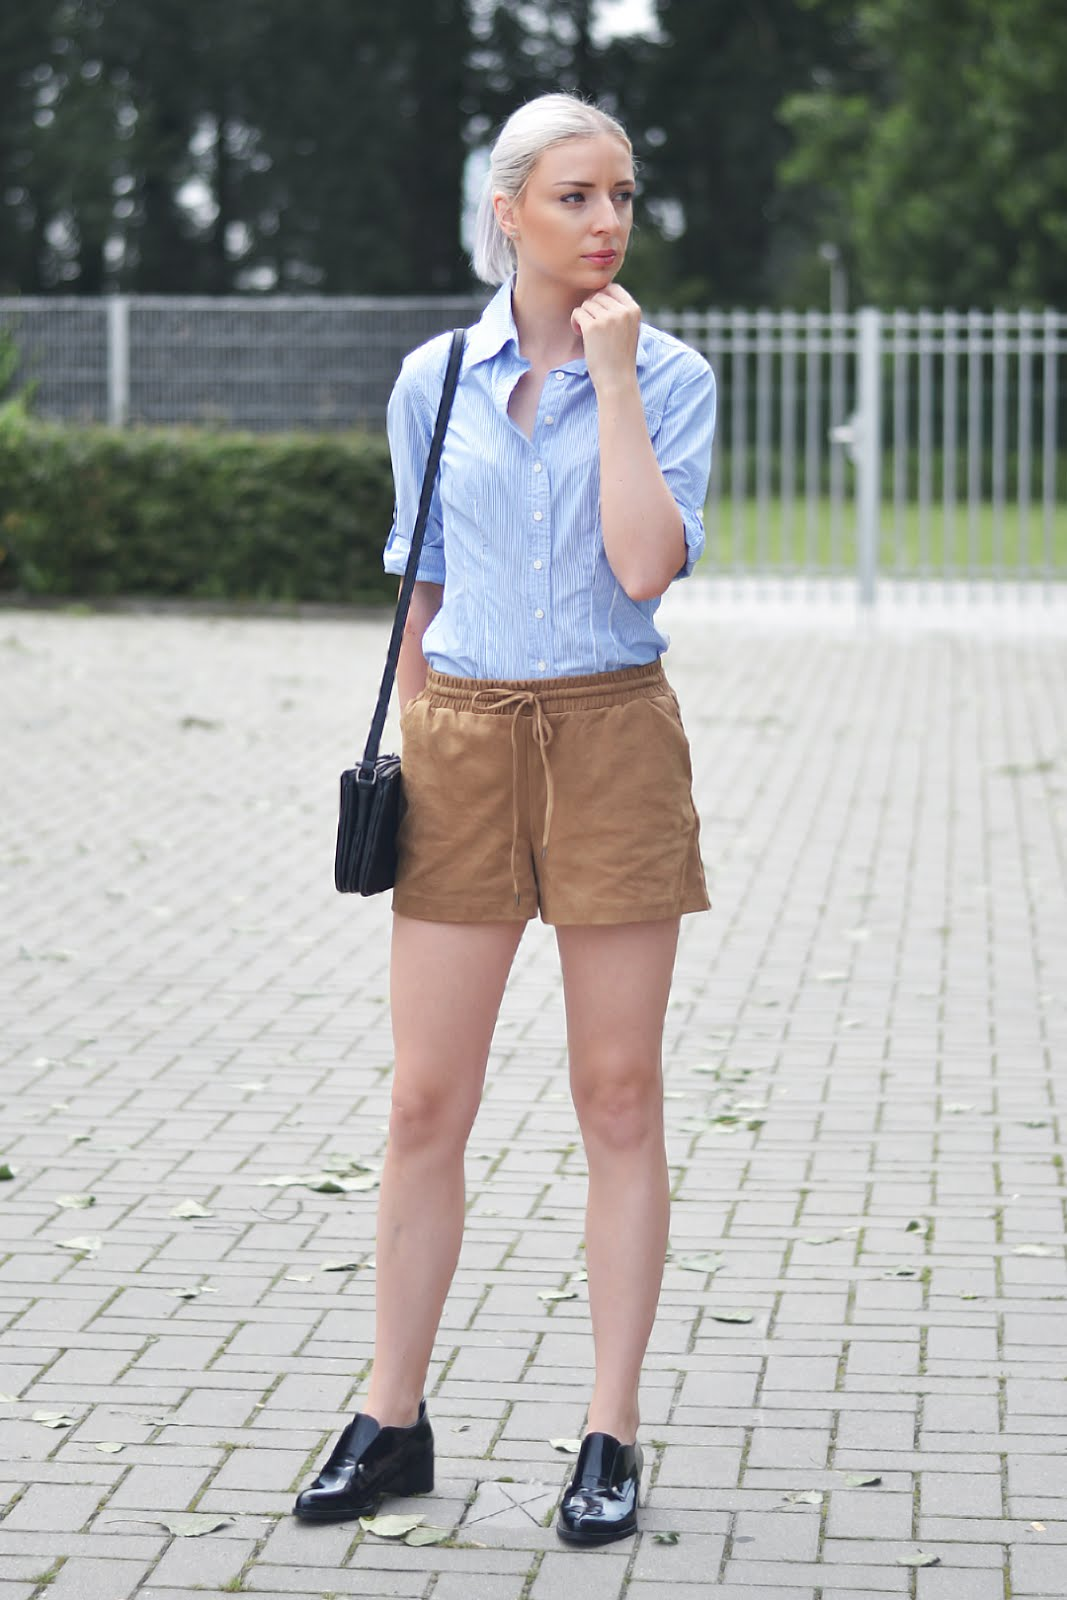 Striped blue shirt, suede shorts, sacha shoes, patent, outfit, liu jo trio bag